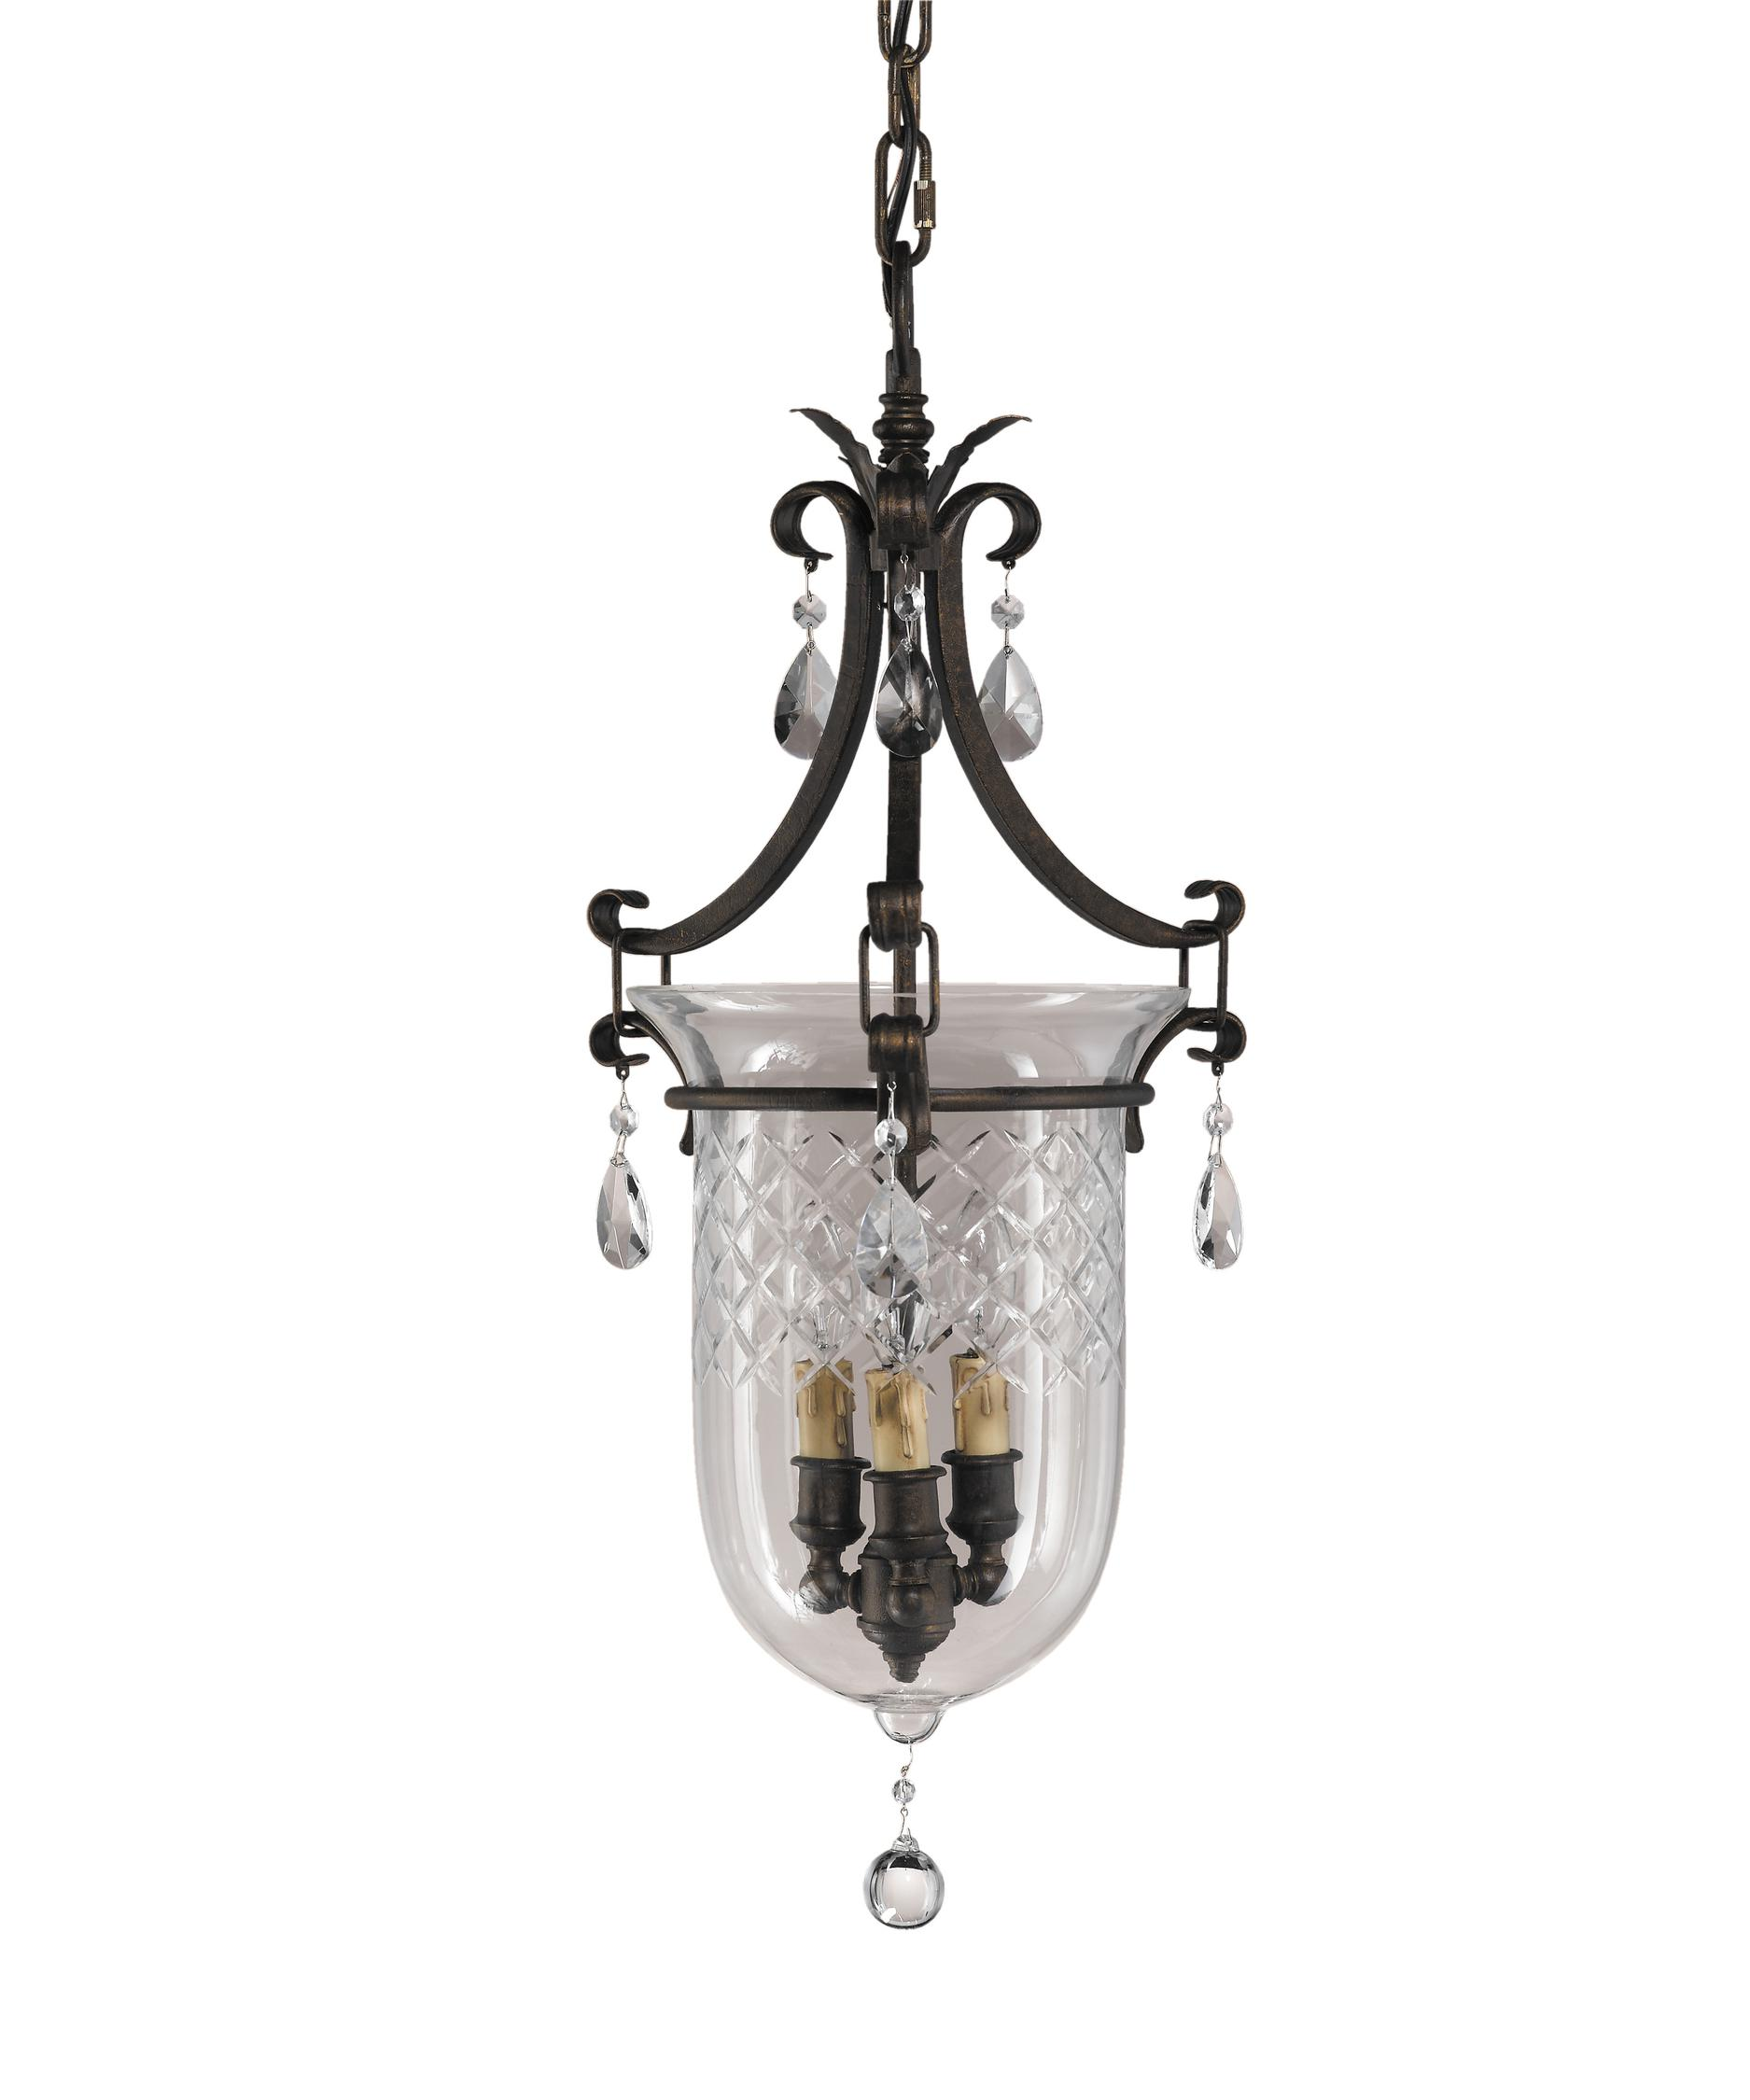 Murray Feiss Fusion Collection: Murray Feiss F2227-3 Salon Maison 13 Inch Large Pendant